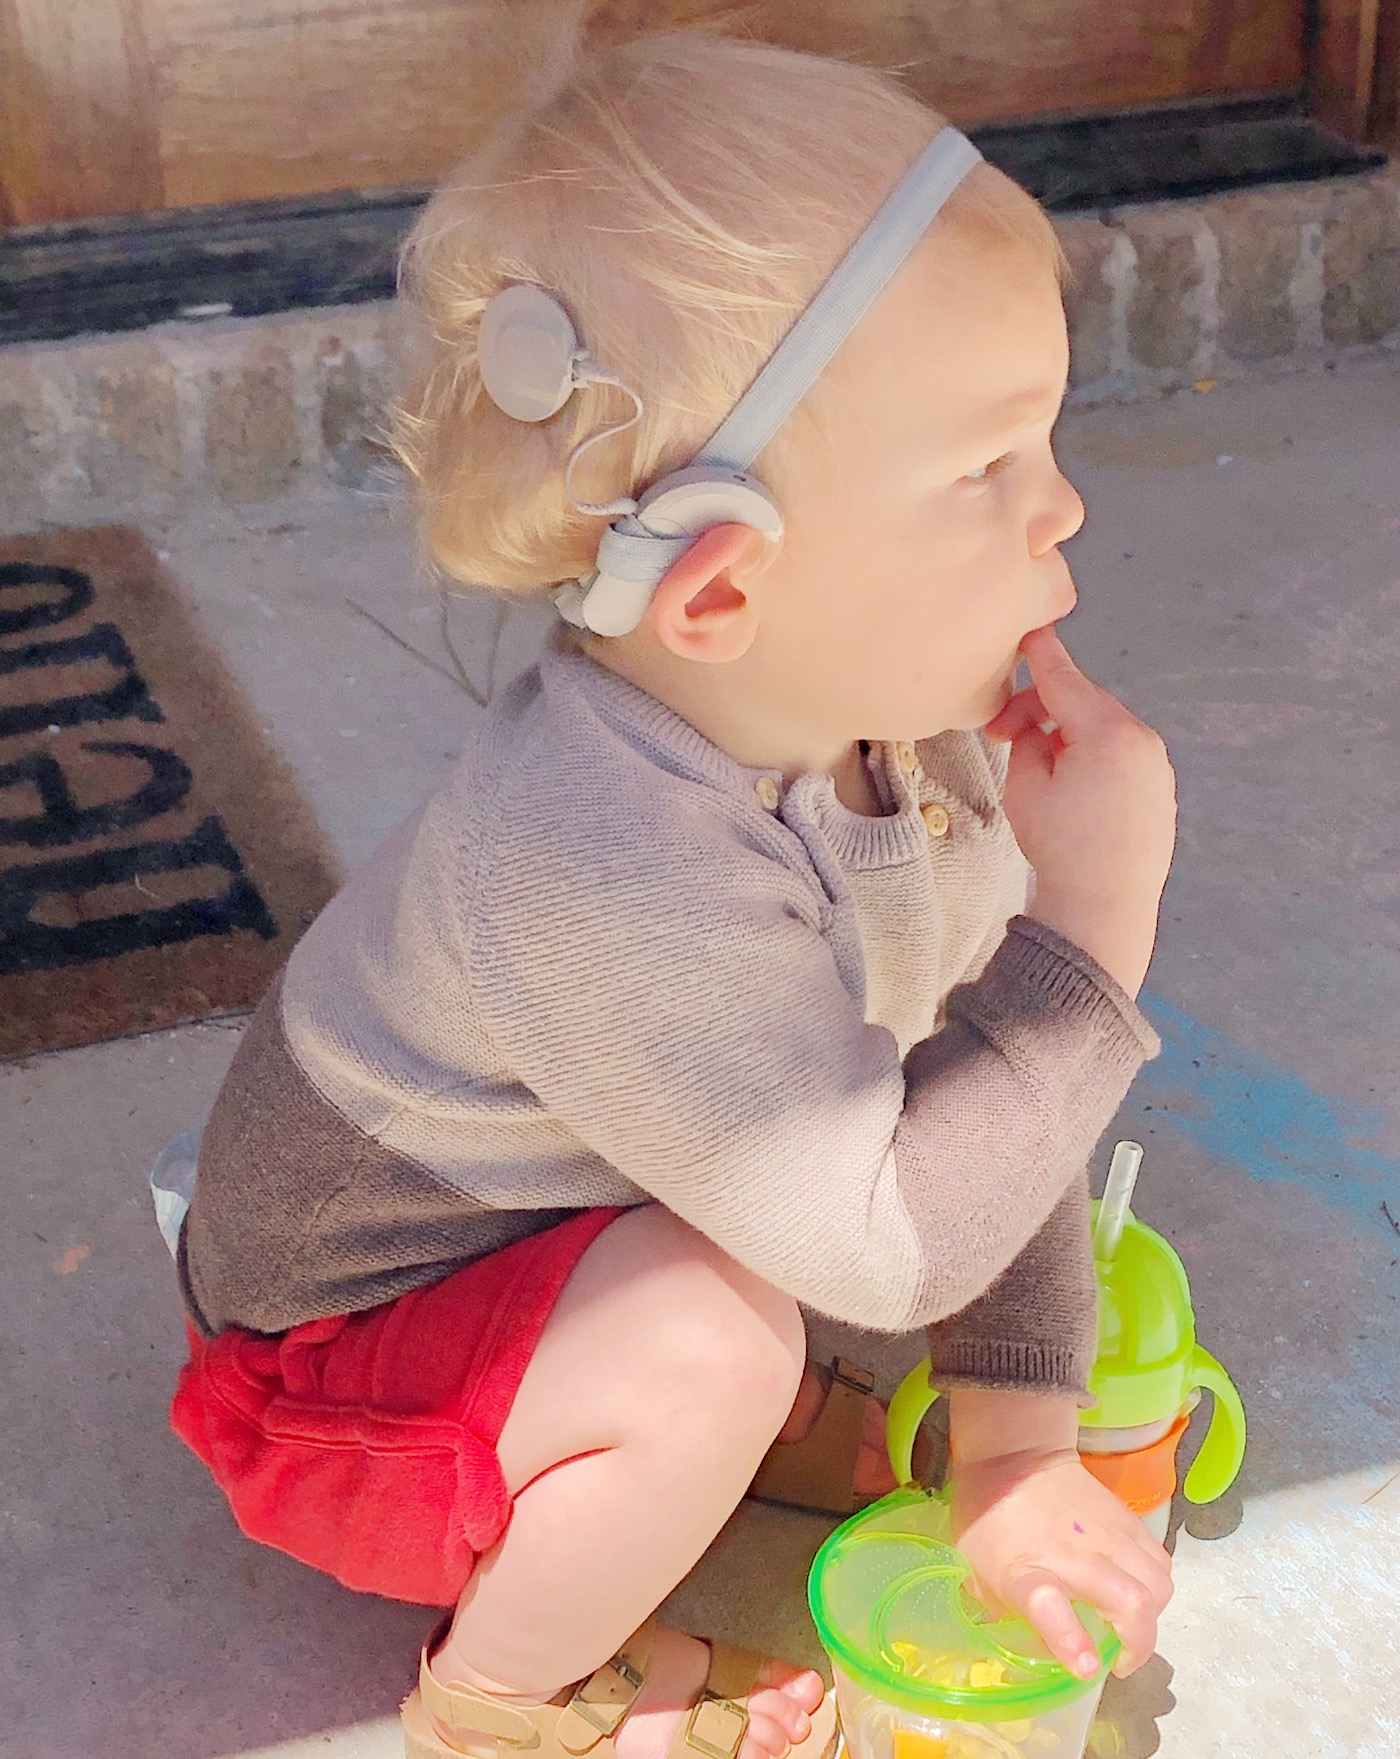 Our journey through hearing loss and cochlear implants